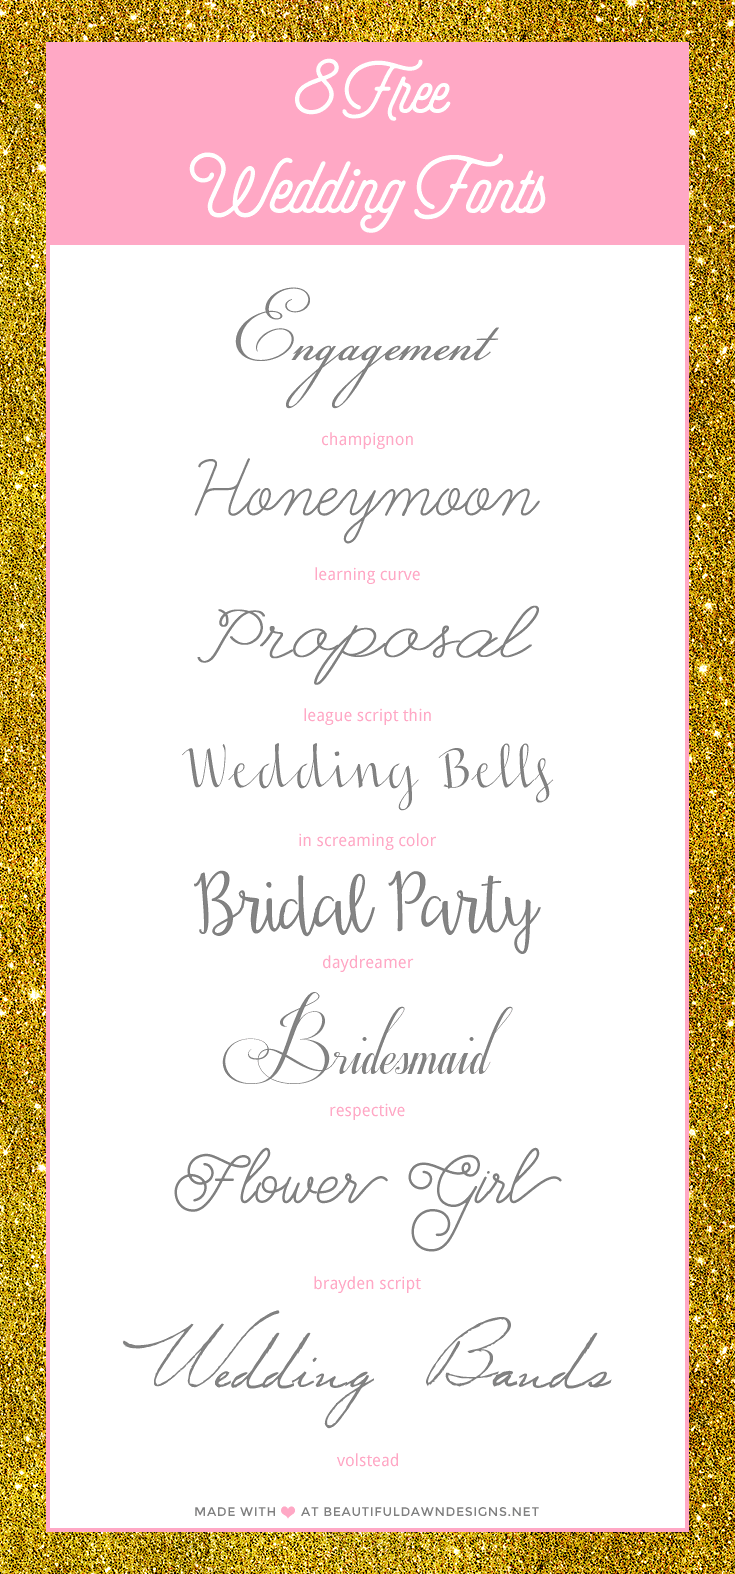 Free Wedding Fonts - Beautiful Dawn Designs